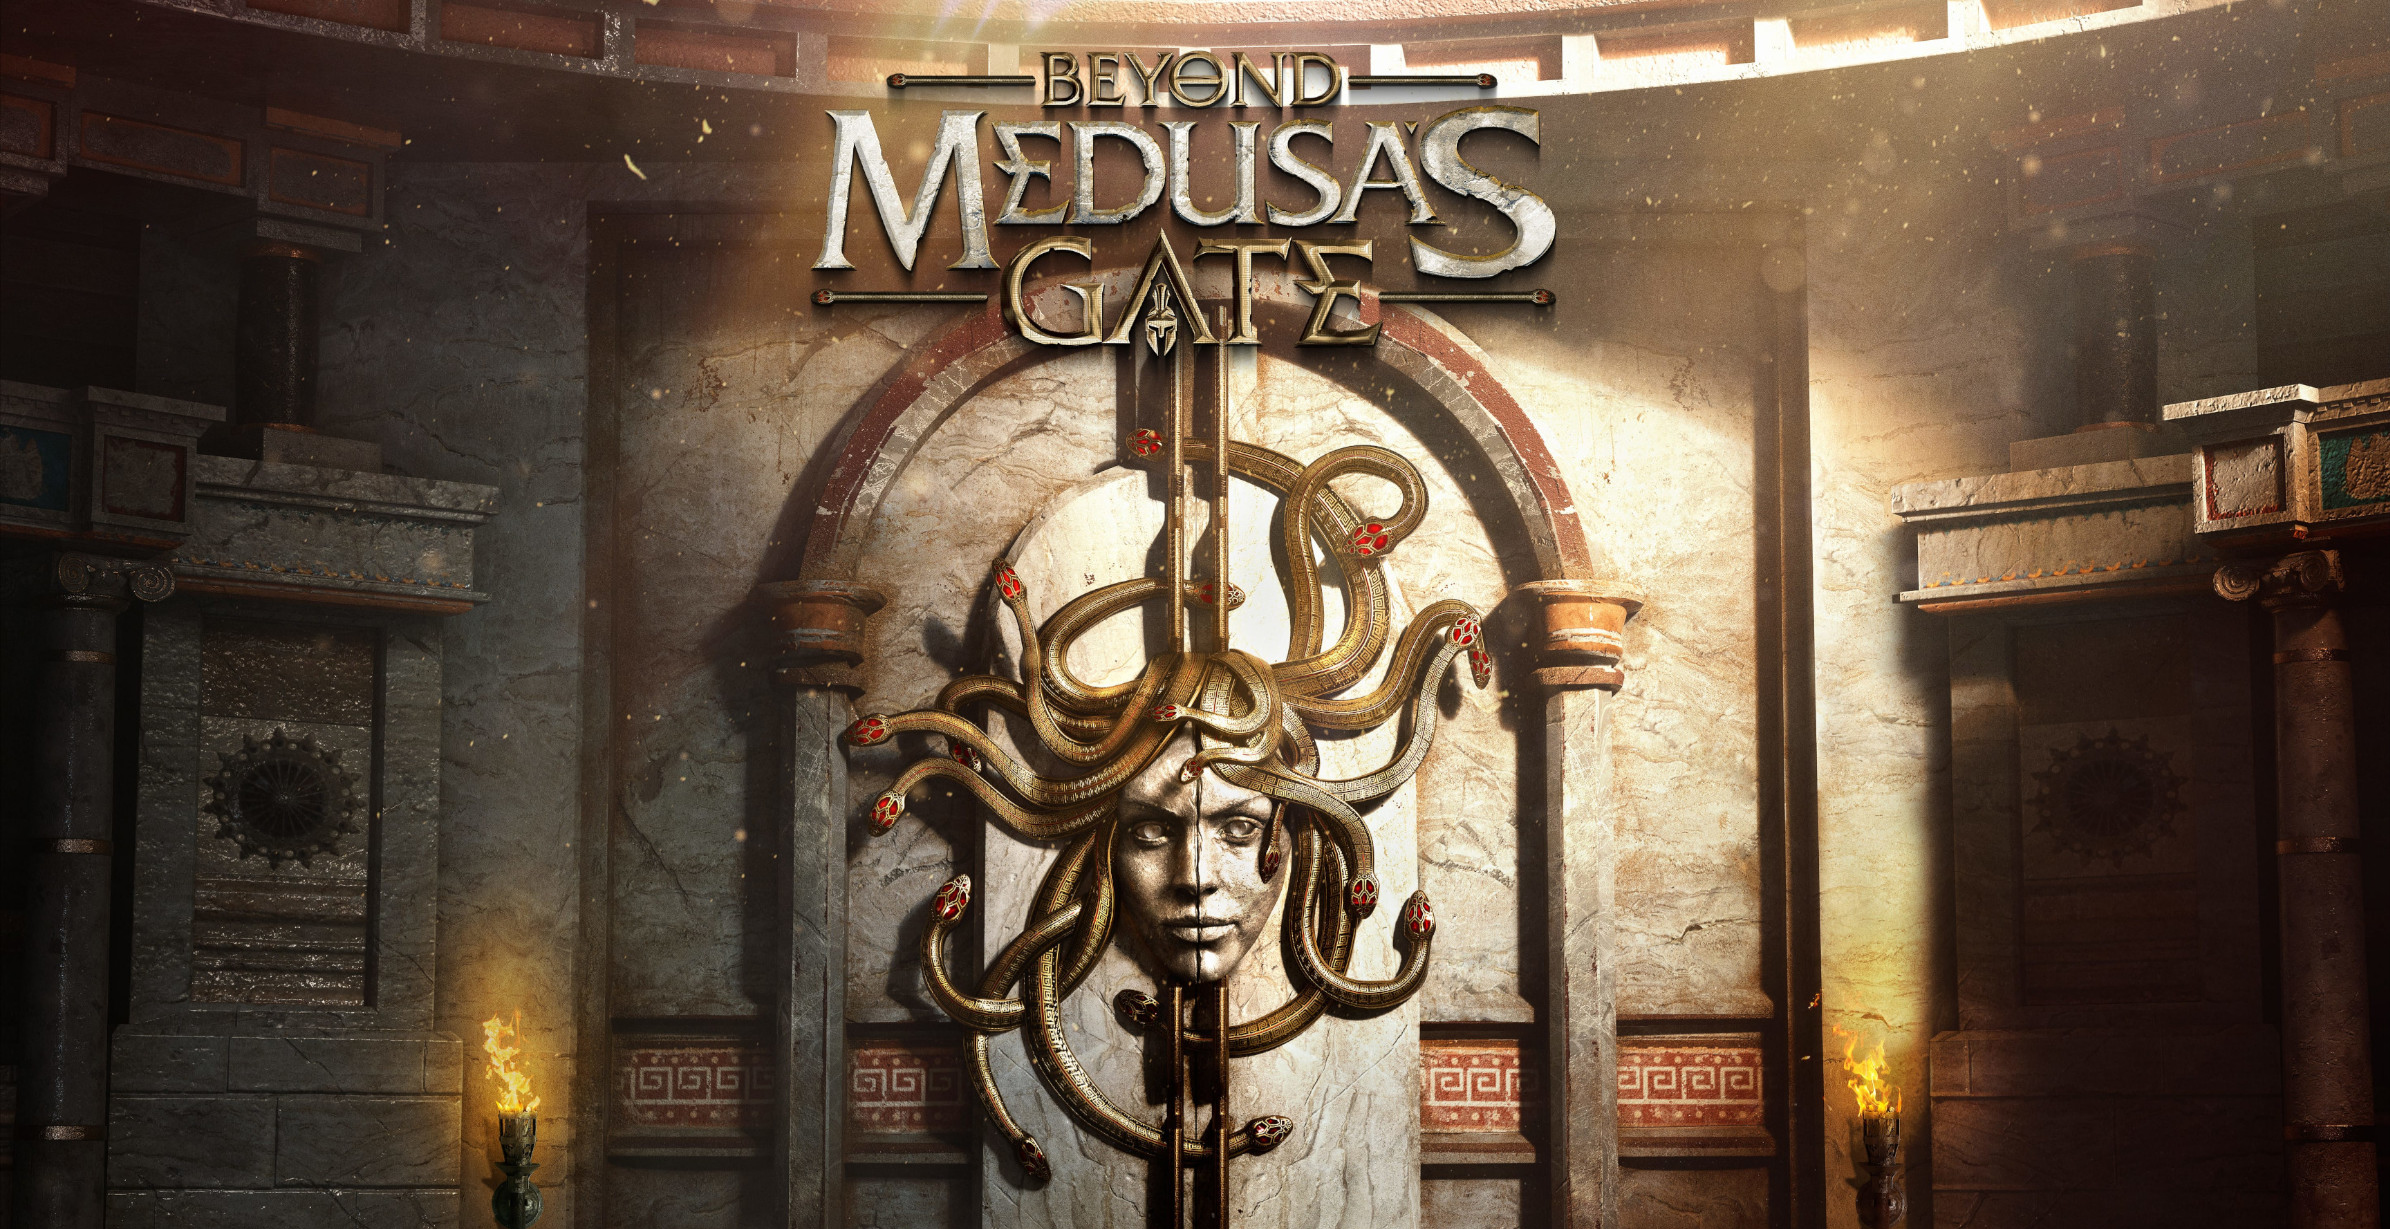 Beyond Medusa S Gate Set In The World Of Assassin S Creed